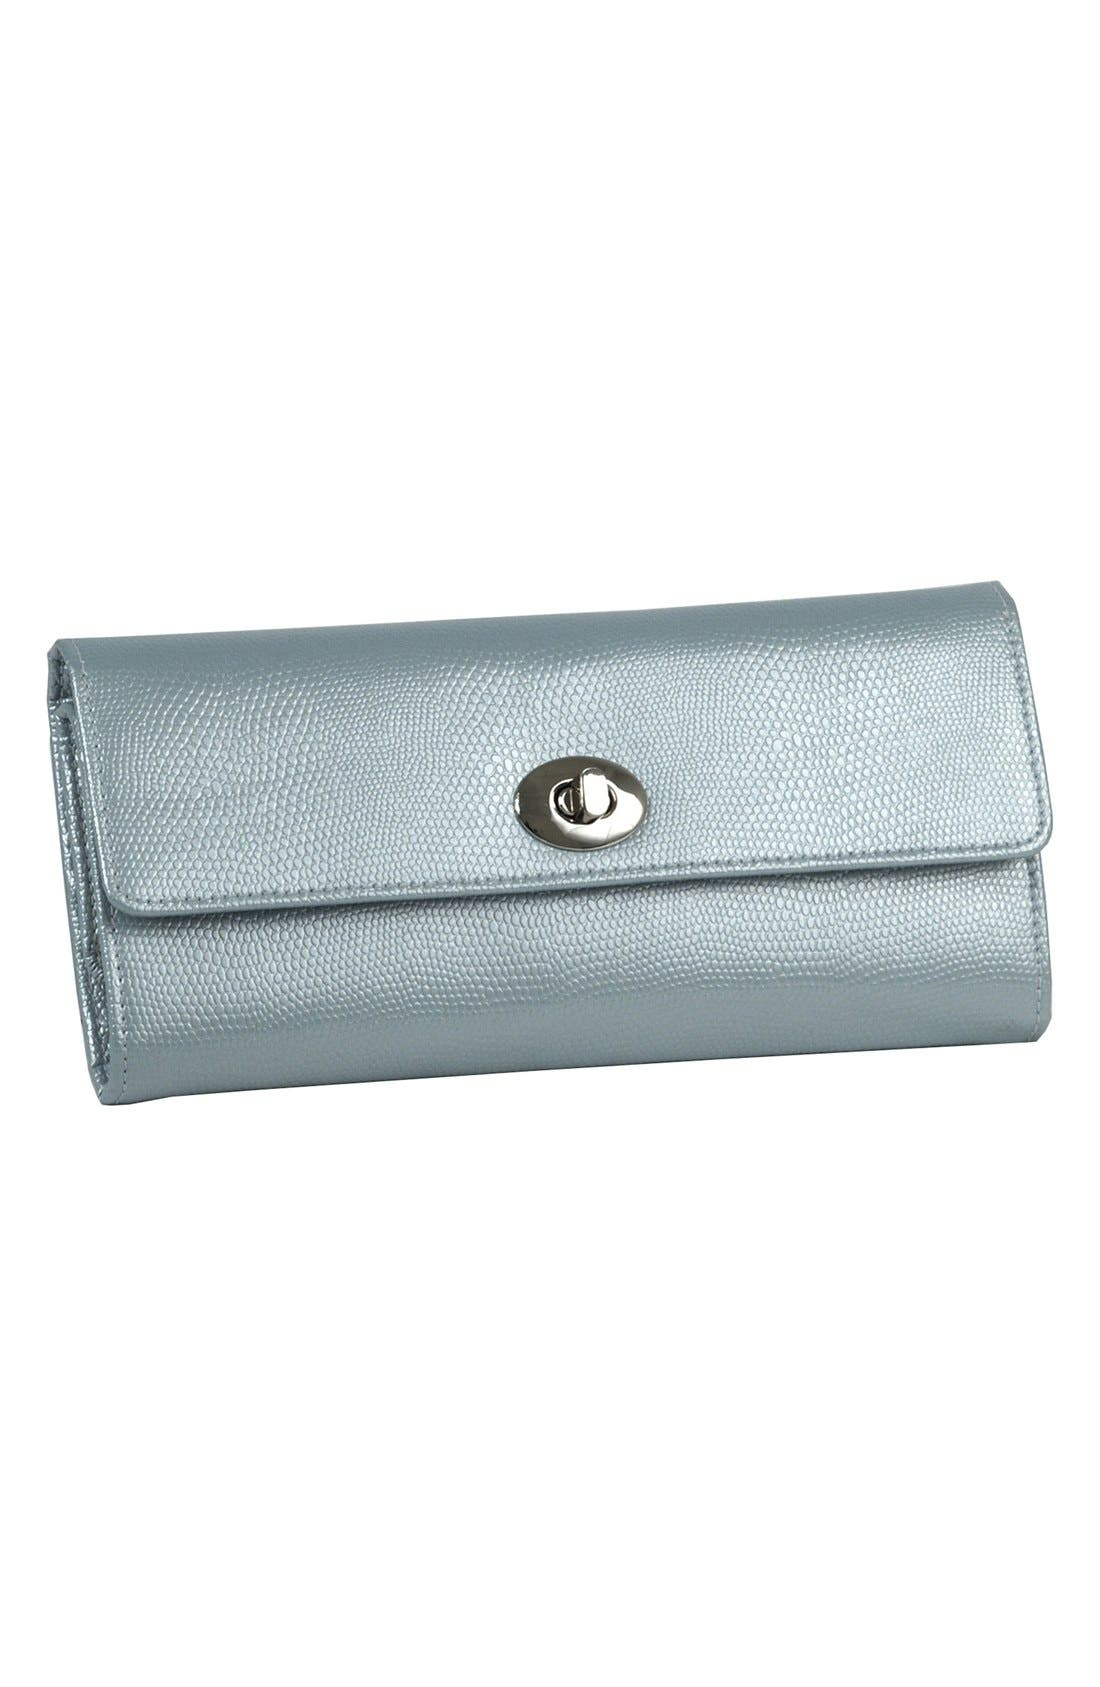 'London' Jewelry Roll,                             Main thumbnail 1, color,                             ICE BLUE